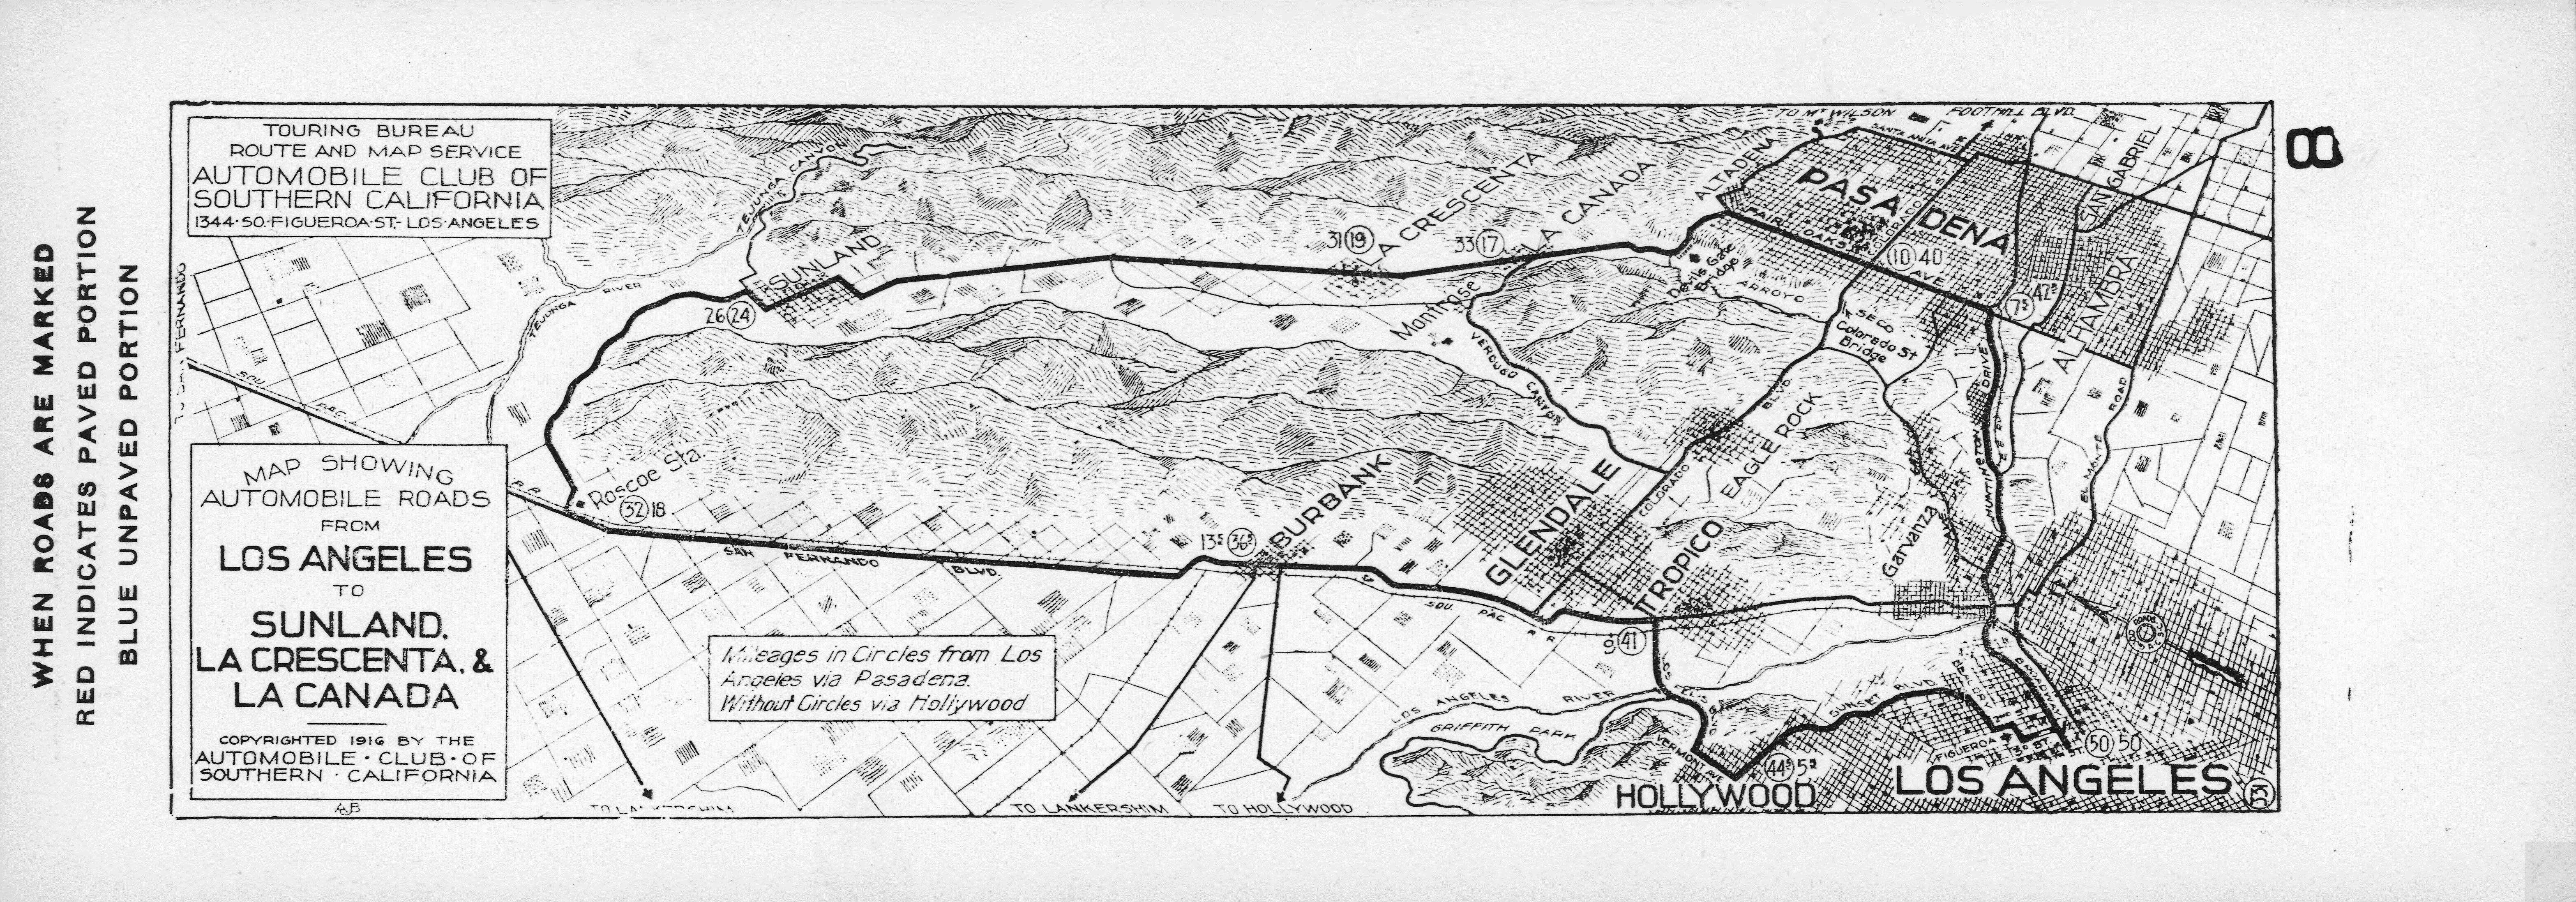 File:map Showing Automobile Roads From Los Angeles To Sunland, La - Aaa California Map